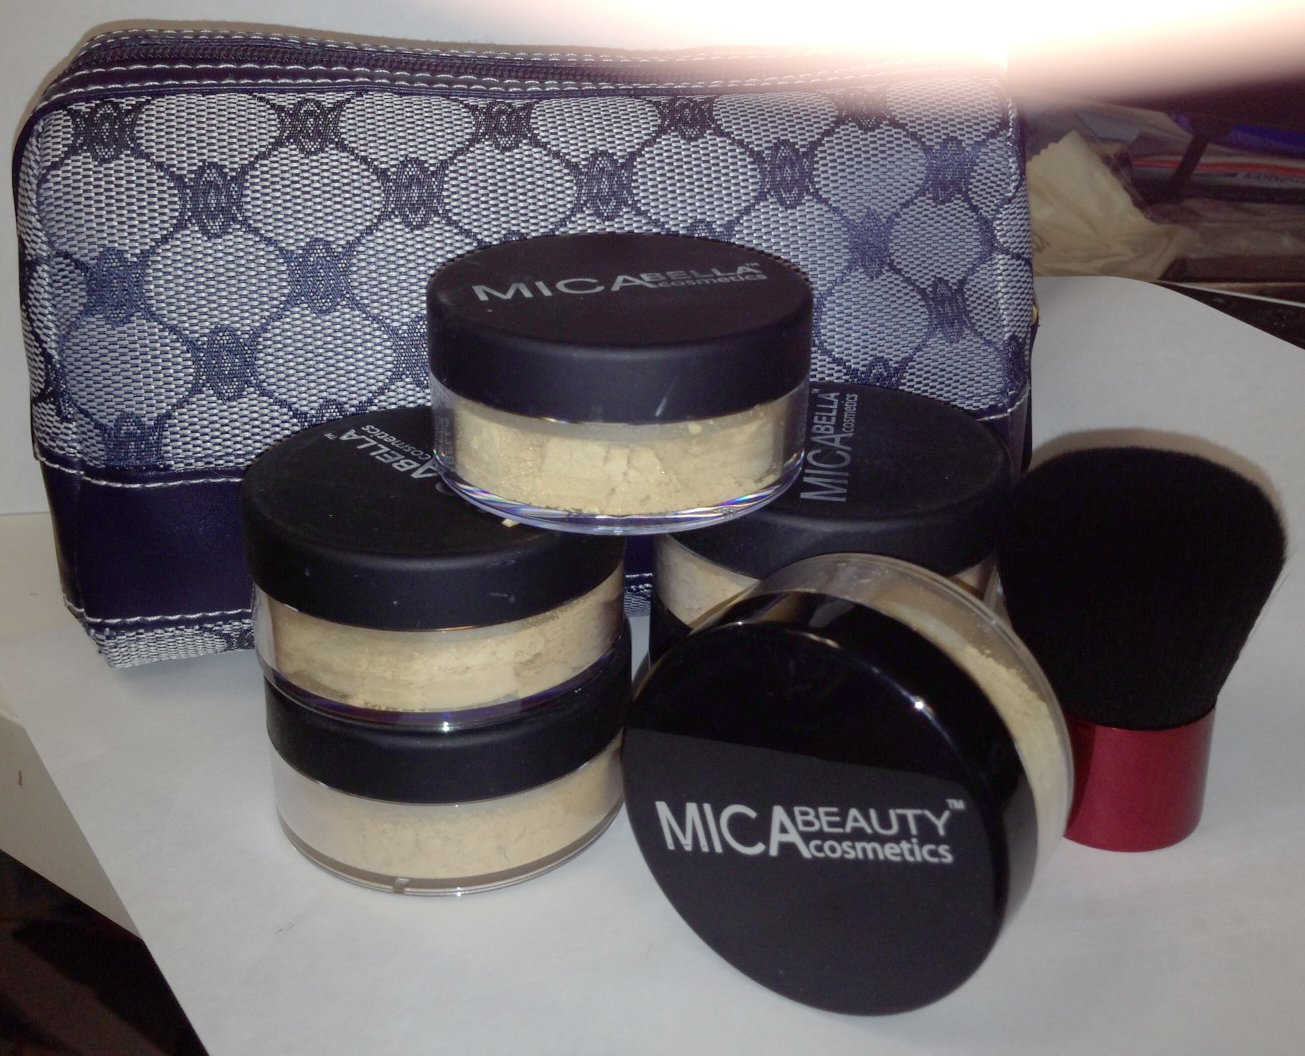 Bundle 8 Items: Mica Beauty (Micabella) 6xmineral Foundation 9 Gr Mf-7 Lady Godiva + Highe Quality Kabuki Brush By Itay+ Makeup Blue Casefull Coverage 100% Natural